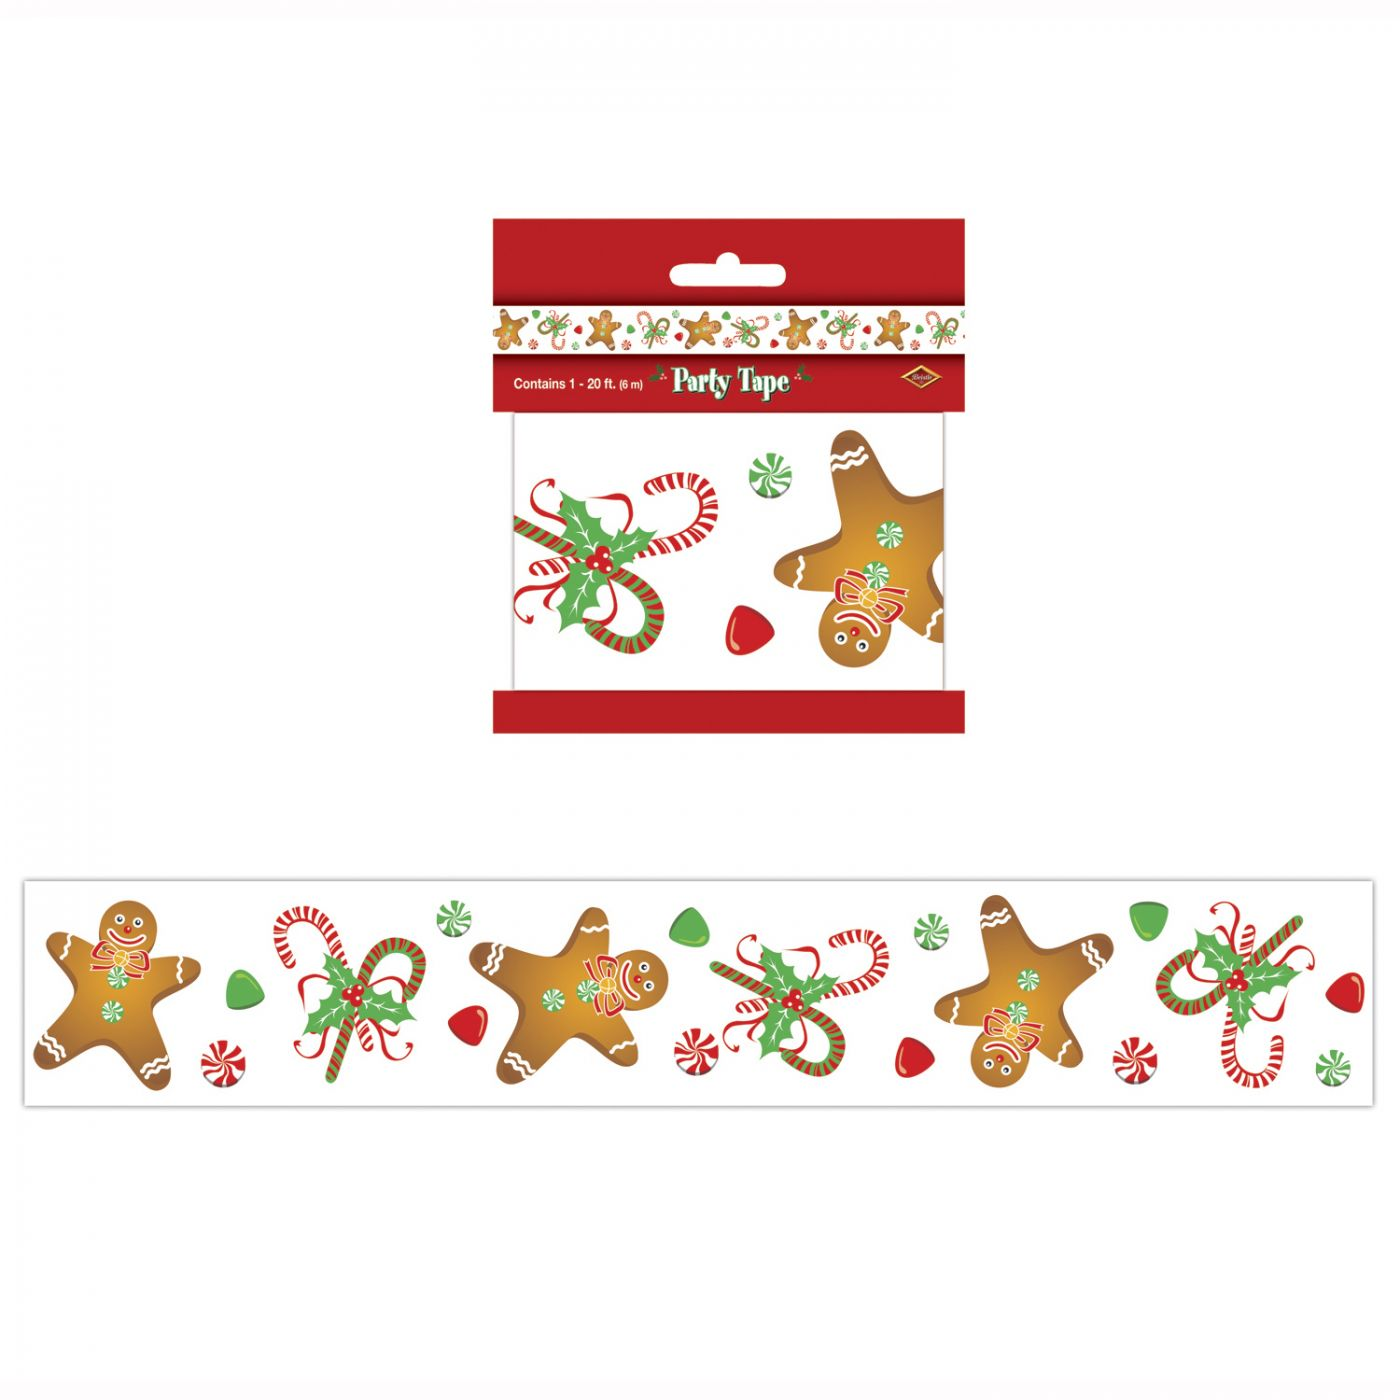 Gingerbread Man Party Tape image